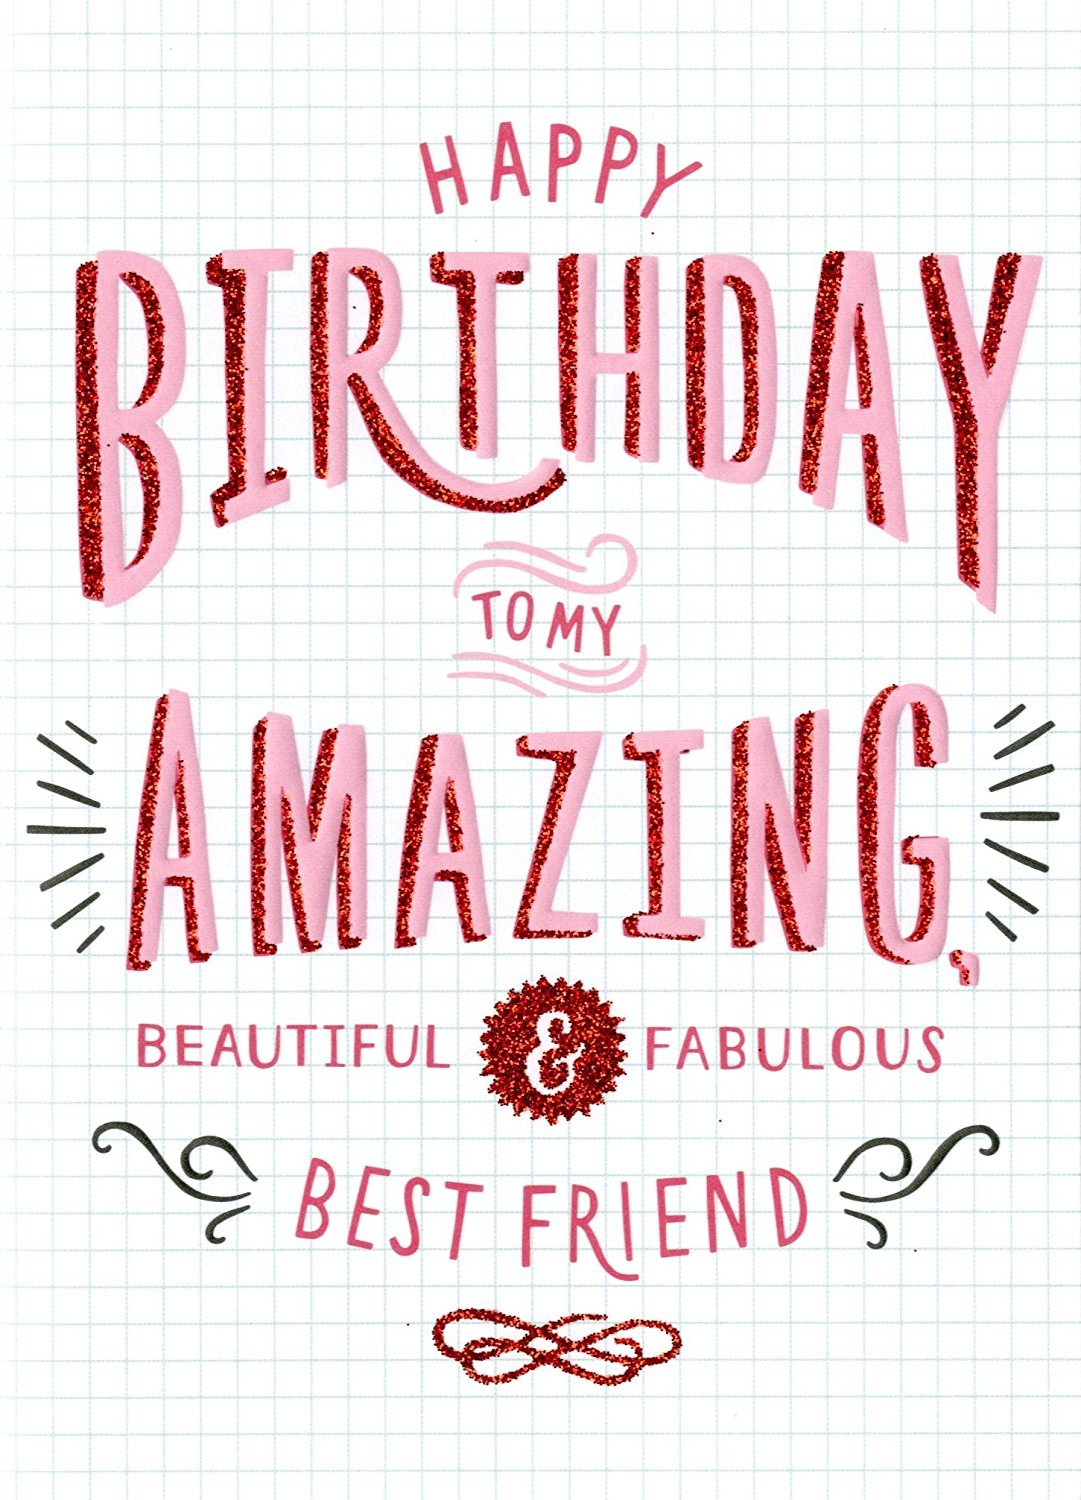 Remarkable Amazing Best Friend Birthday Card Second Nature More Than Words Personalised Birthday Cards Xaembasilily Jamesorg